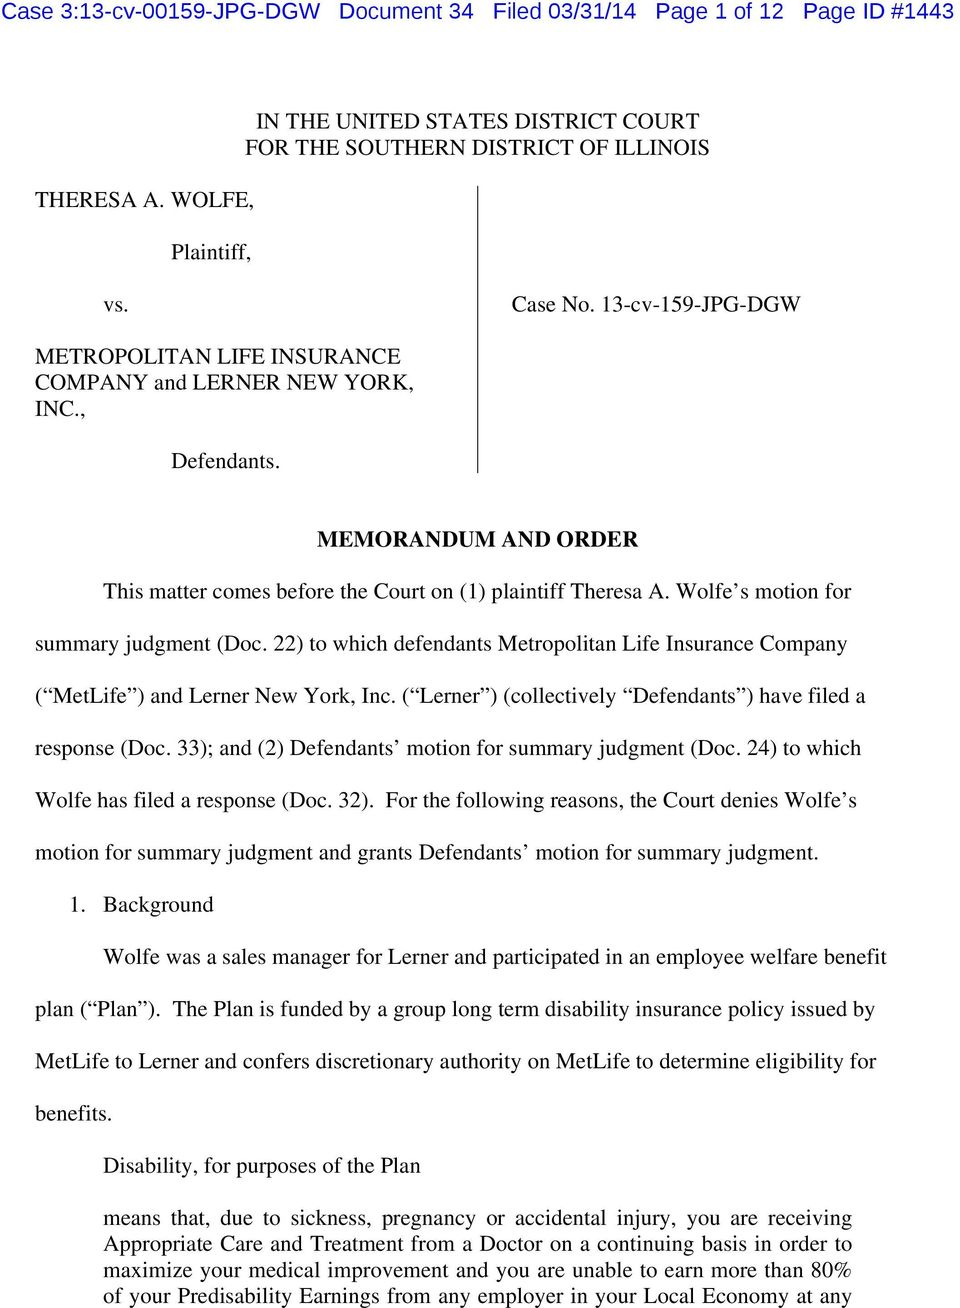 Wolfe s motion for summary judgment (Doc. 22) to which defendants Metropolitan Life Insurance Company ( MetLife ) and Lerner New York, Inc.